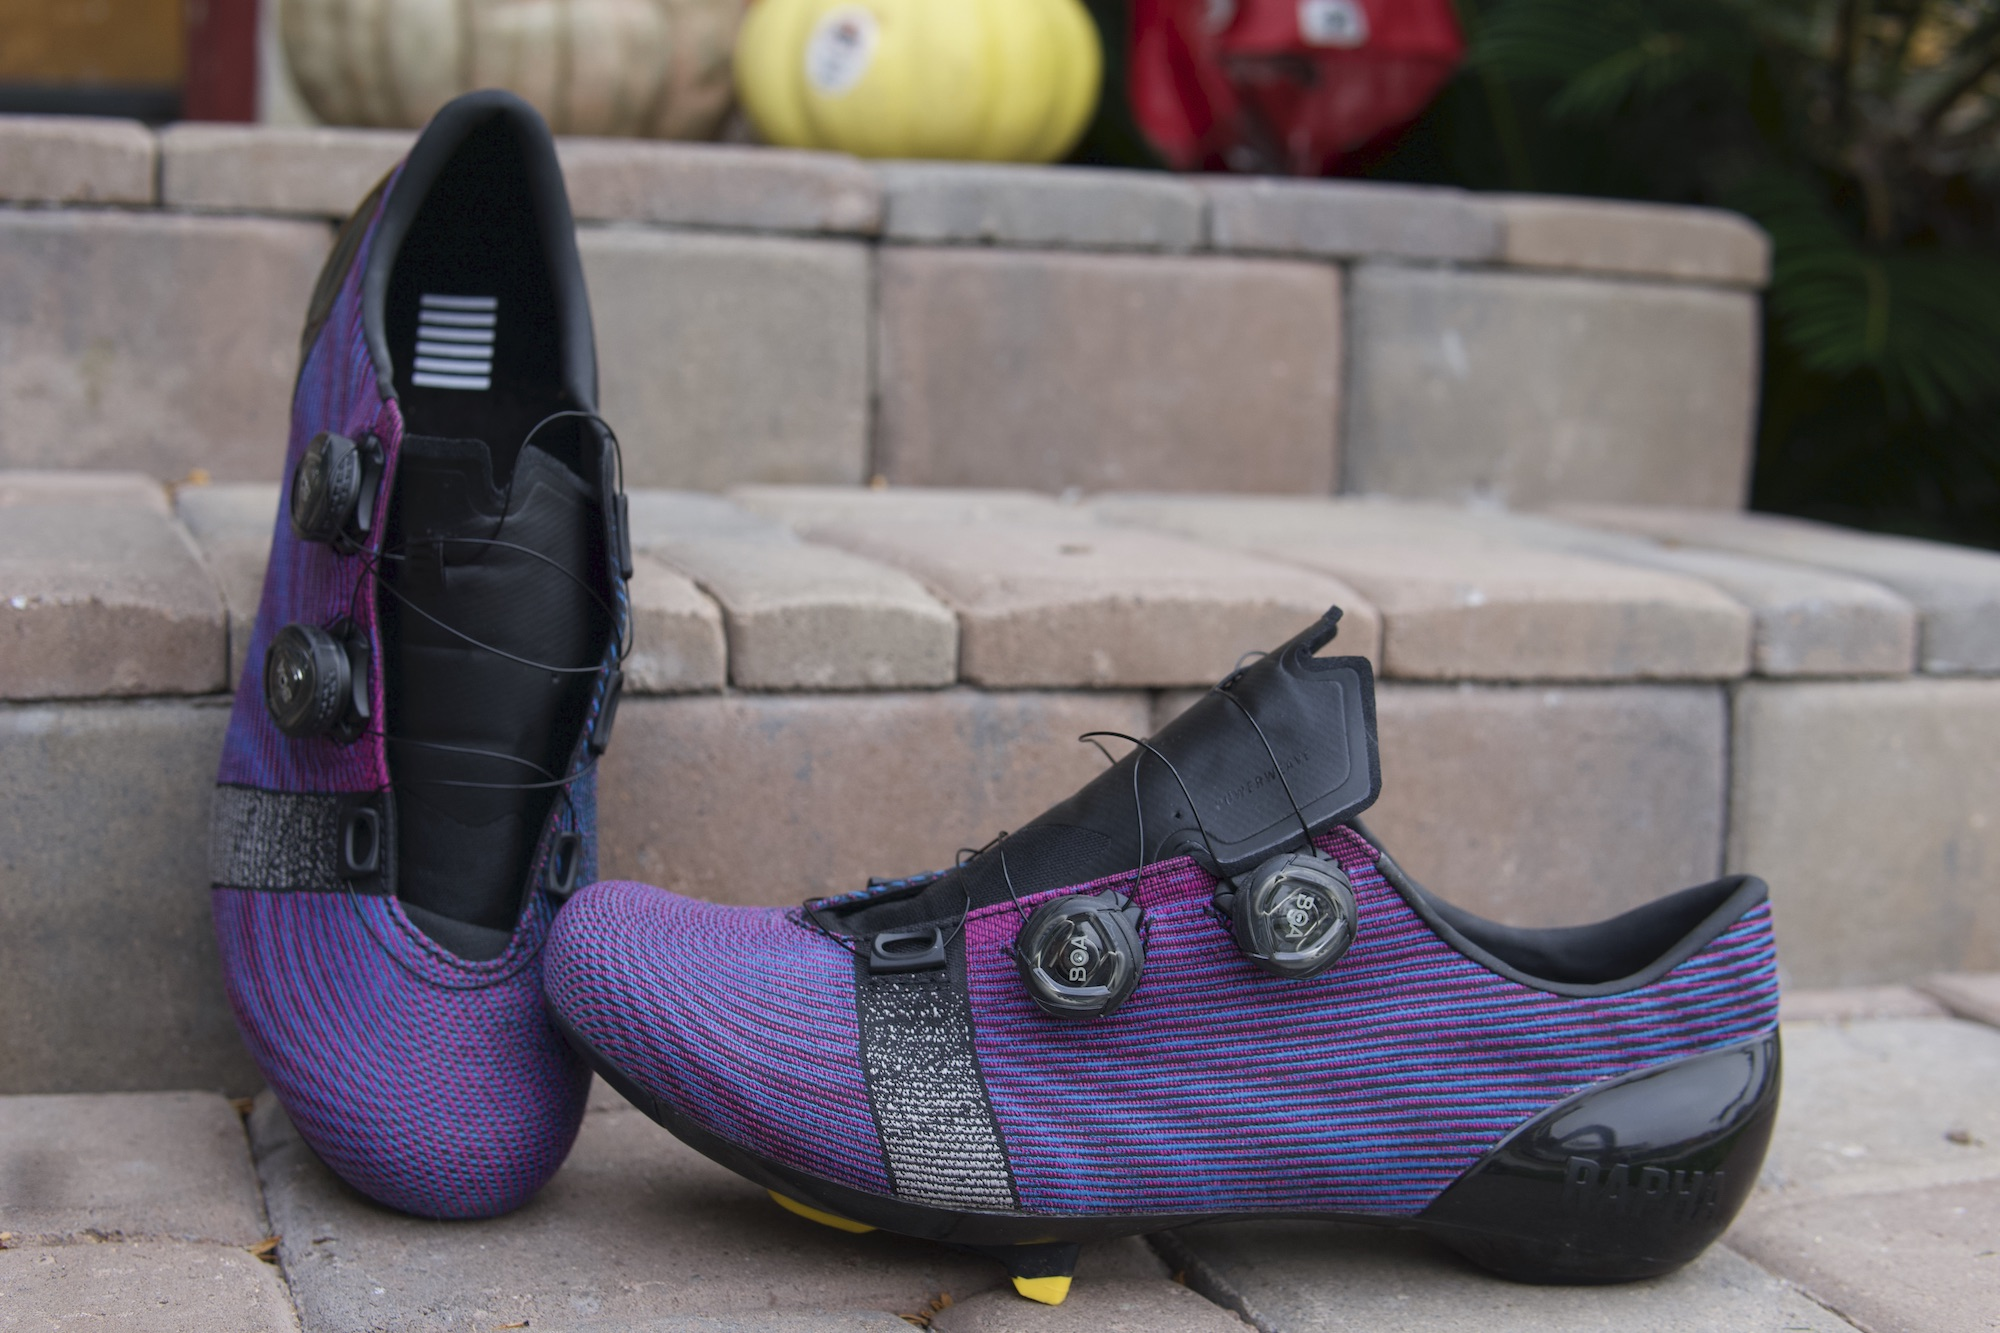 Rapha's new Pro Team Shoe is designed with World Tour performance in mind.